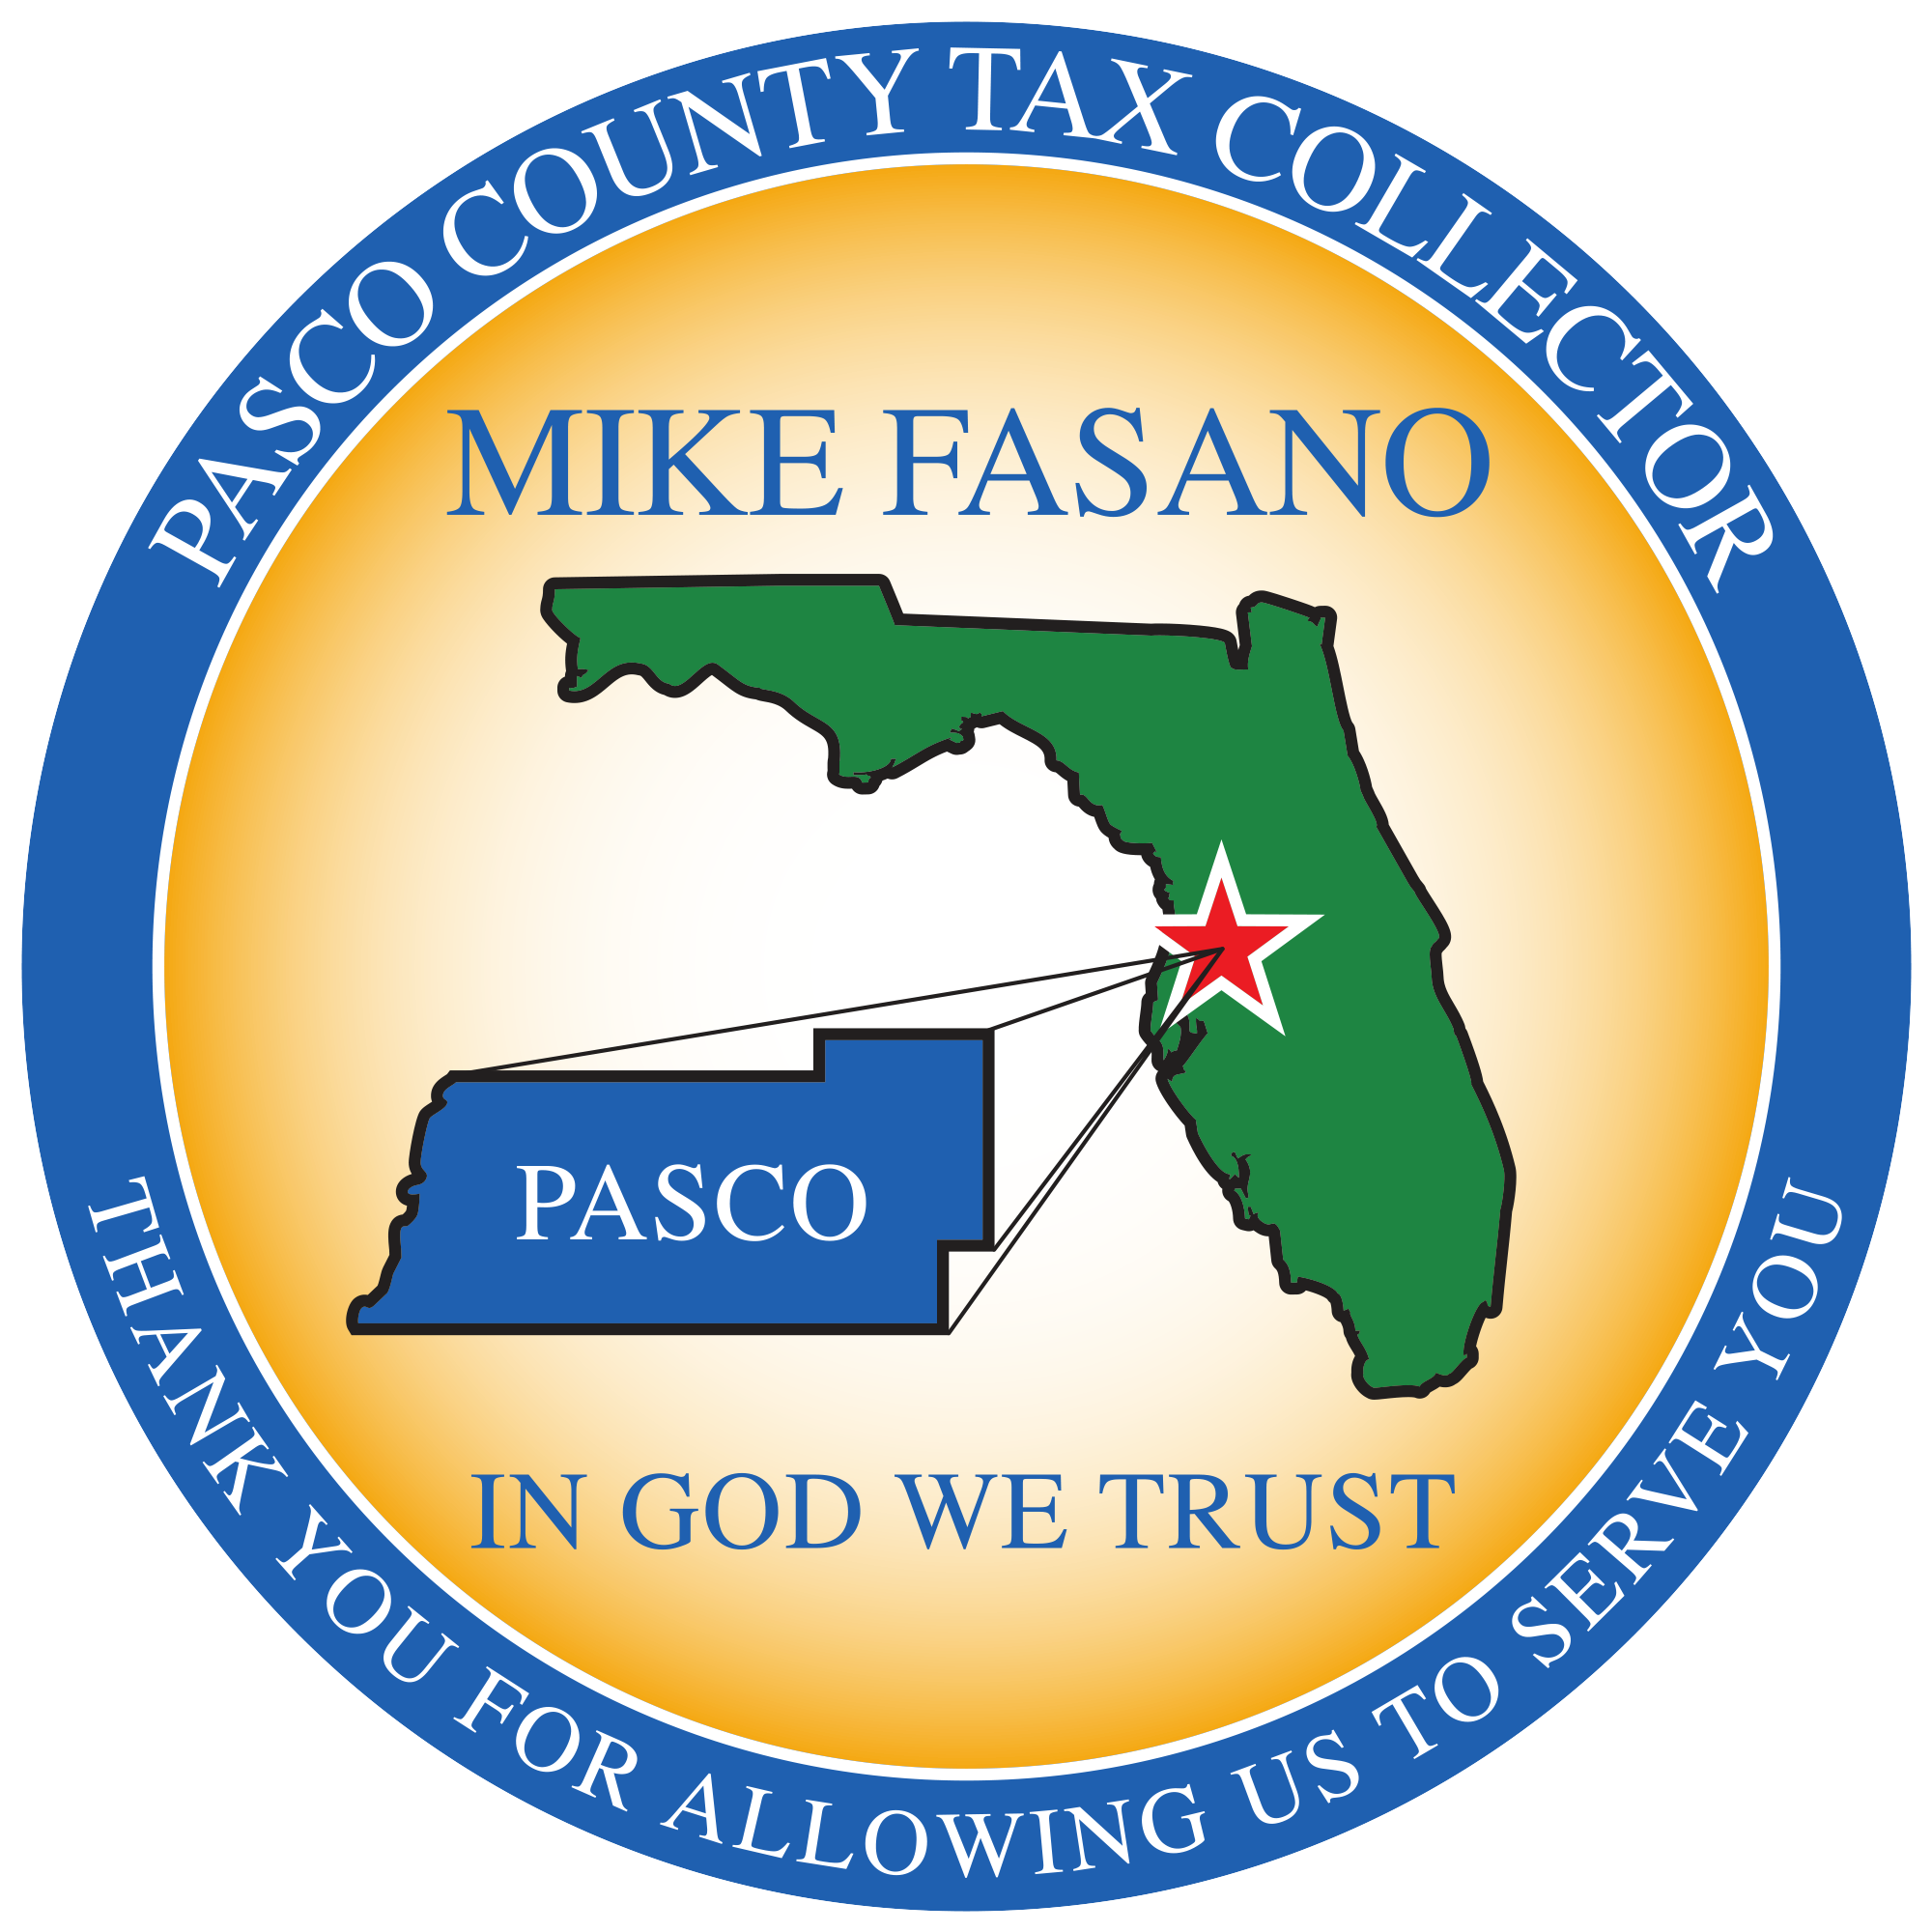 Pasco County Mike Fasano Business tax 2019.png